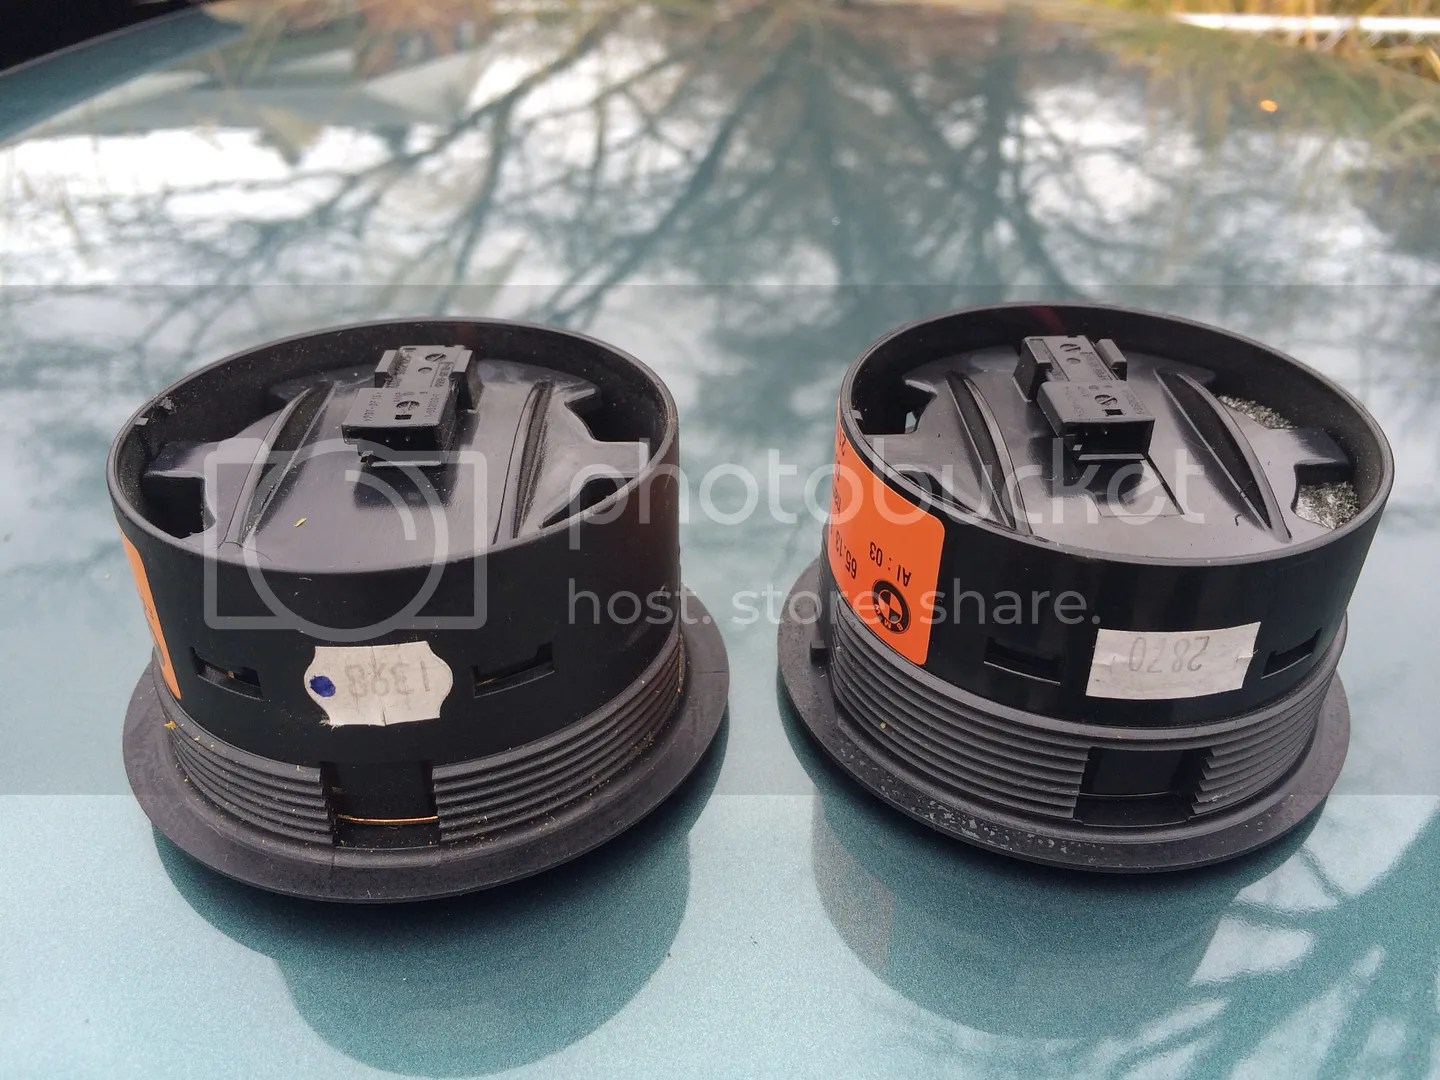 hight resolution of well here are the comparison pictures between my current e36 hk mid range speaker and the e46 sedan hk mid range speaker